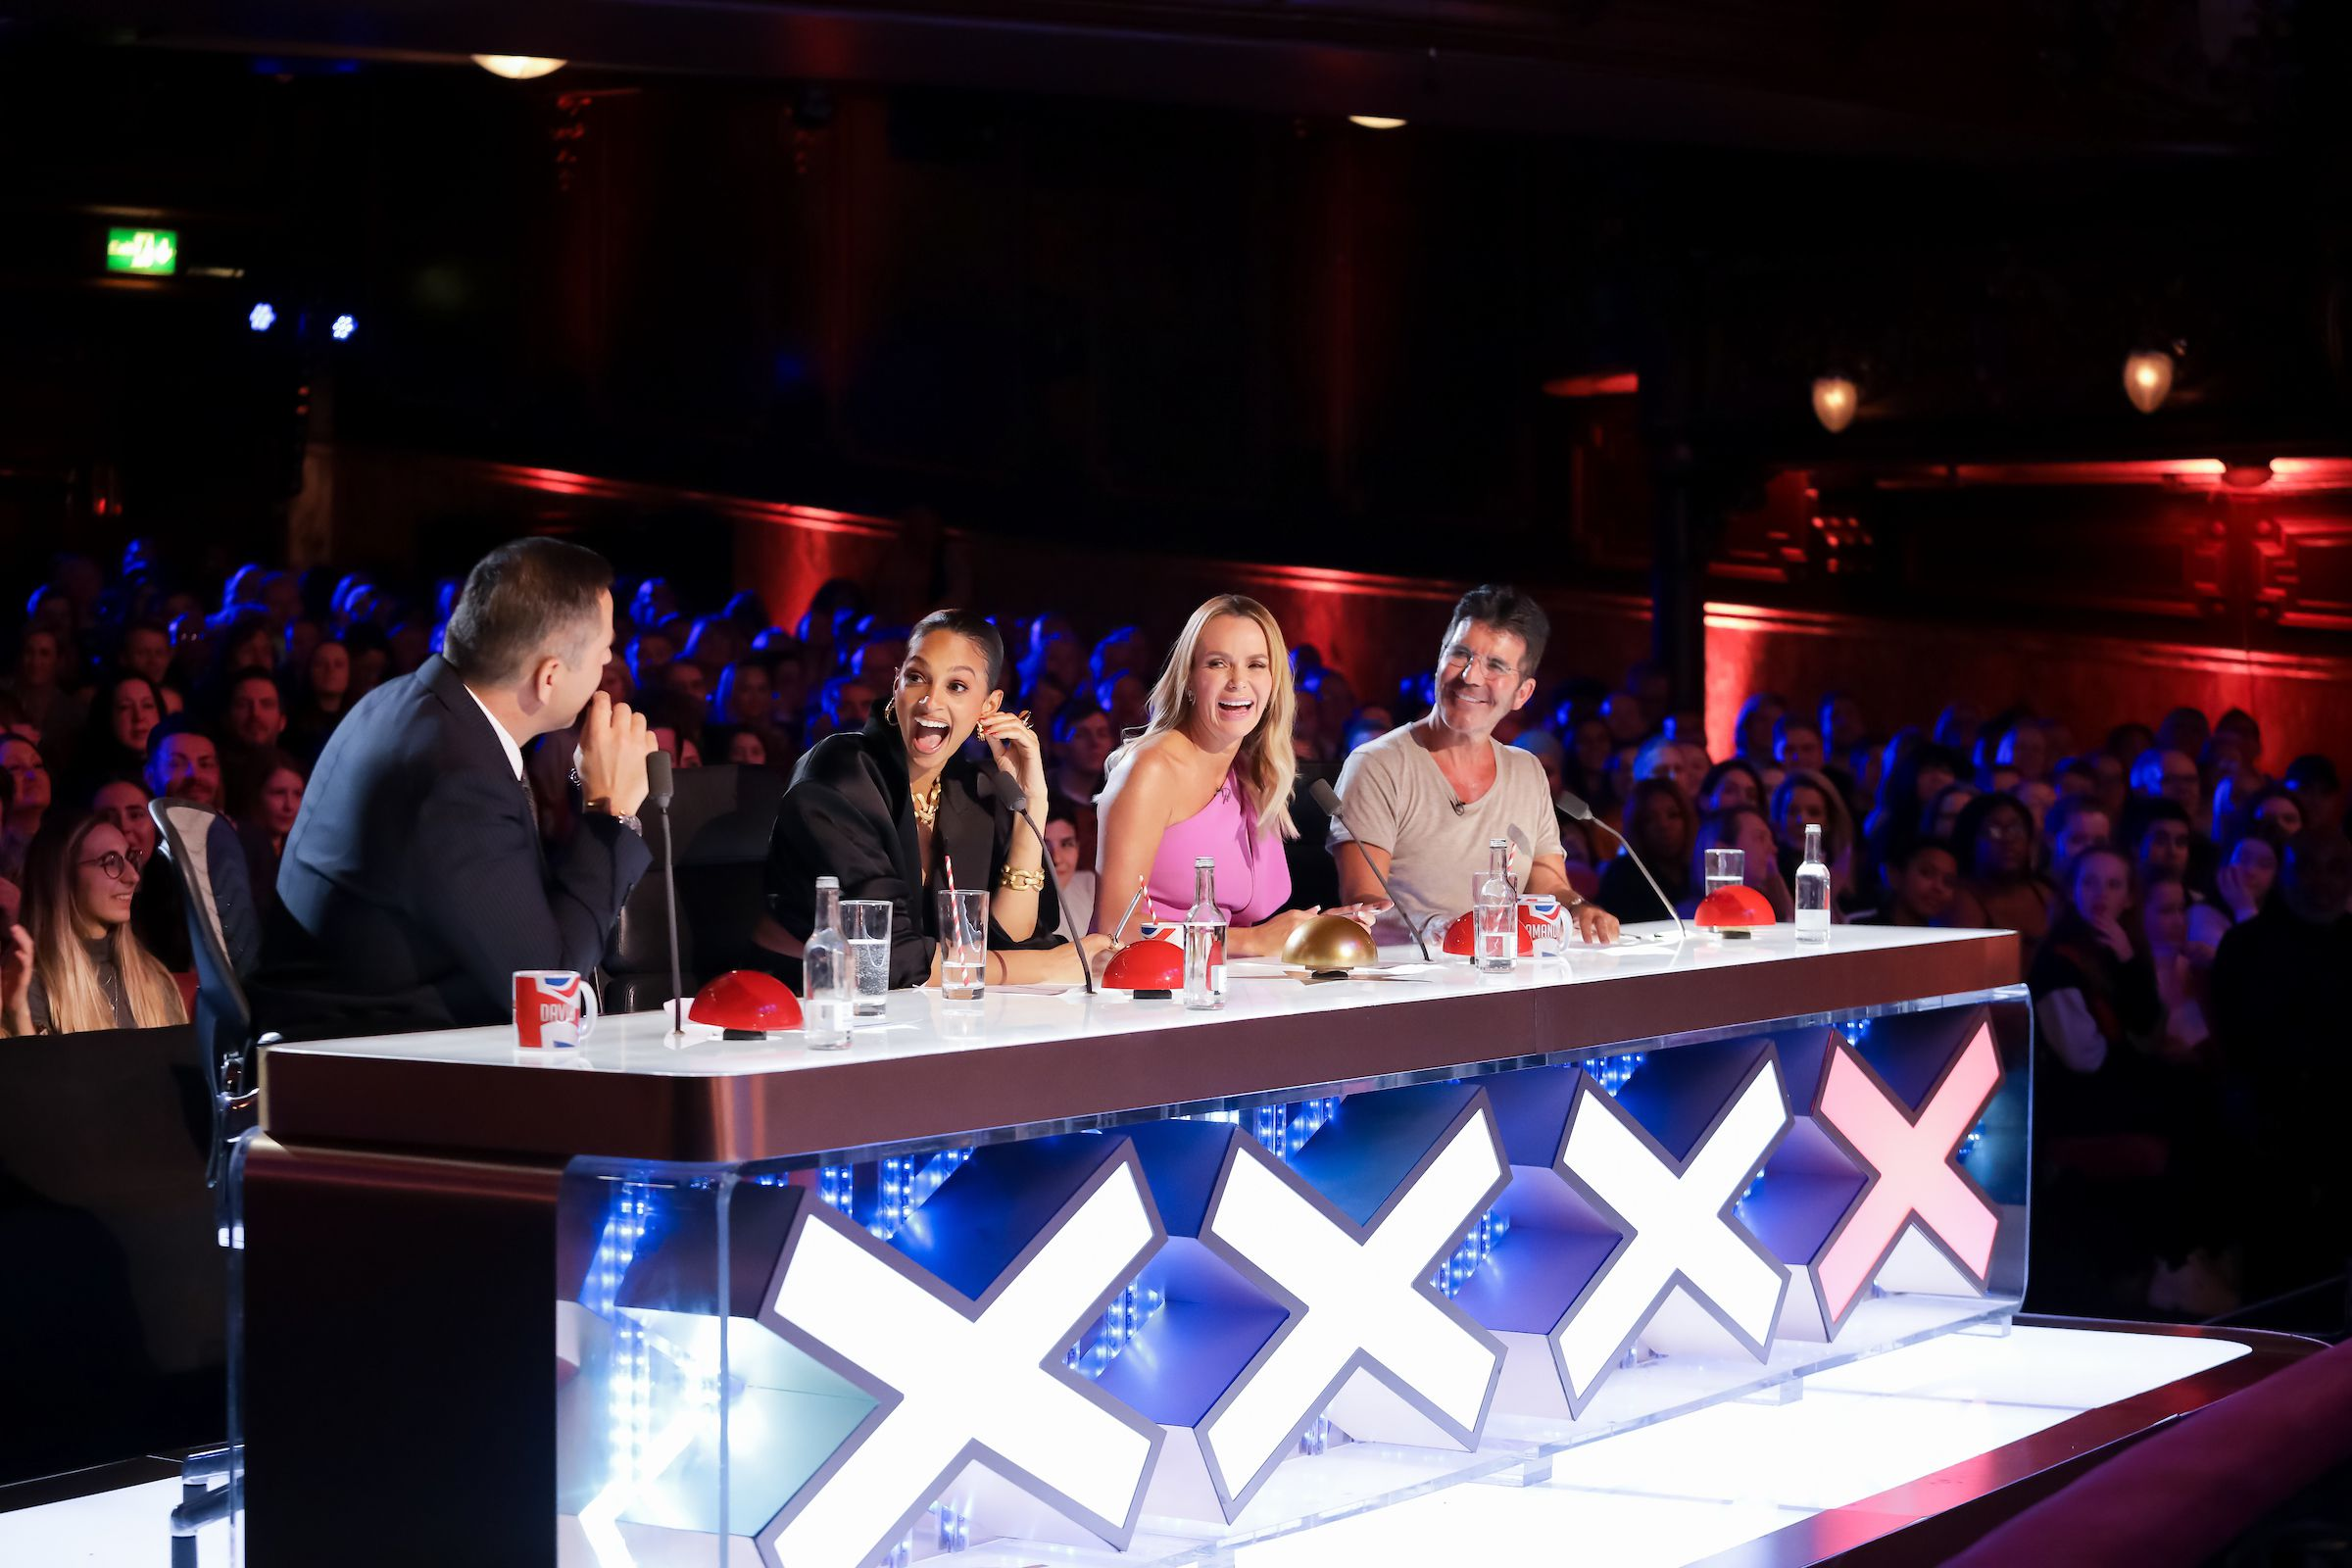 BGT: When will the live semi-finals and final shows be on?